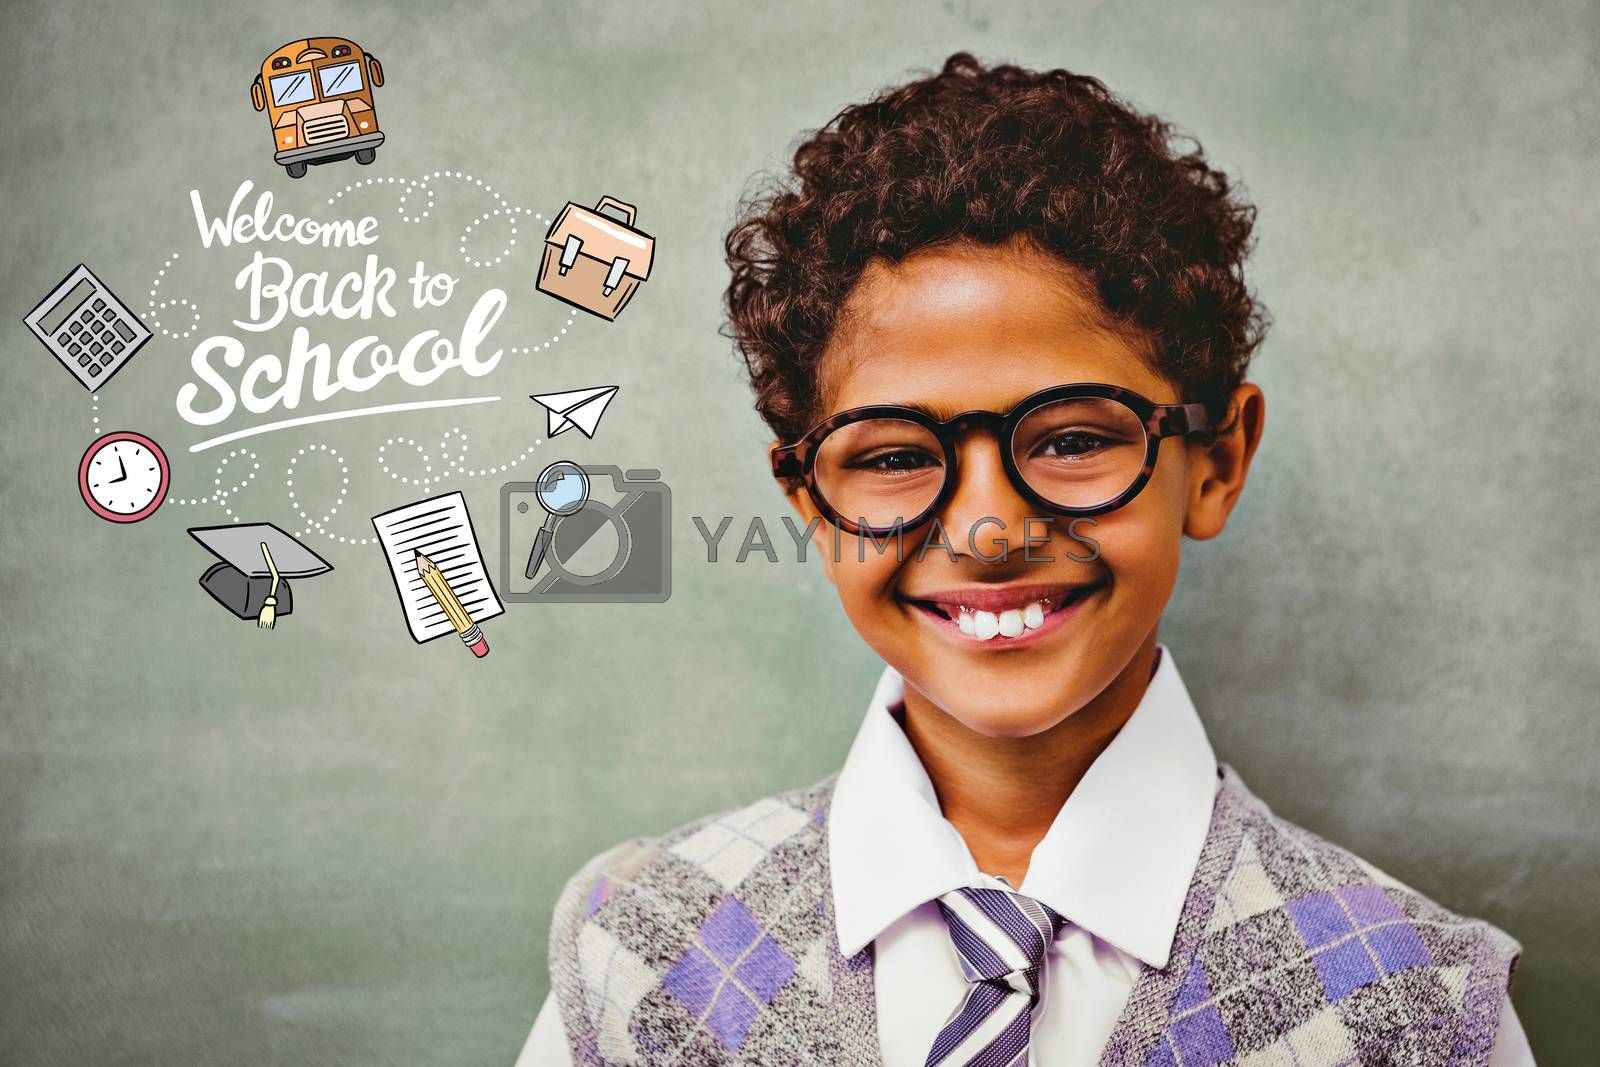 back to school against cute little boy smiling in classroom